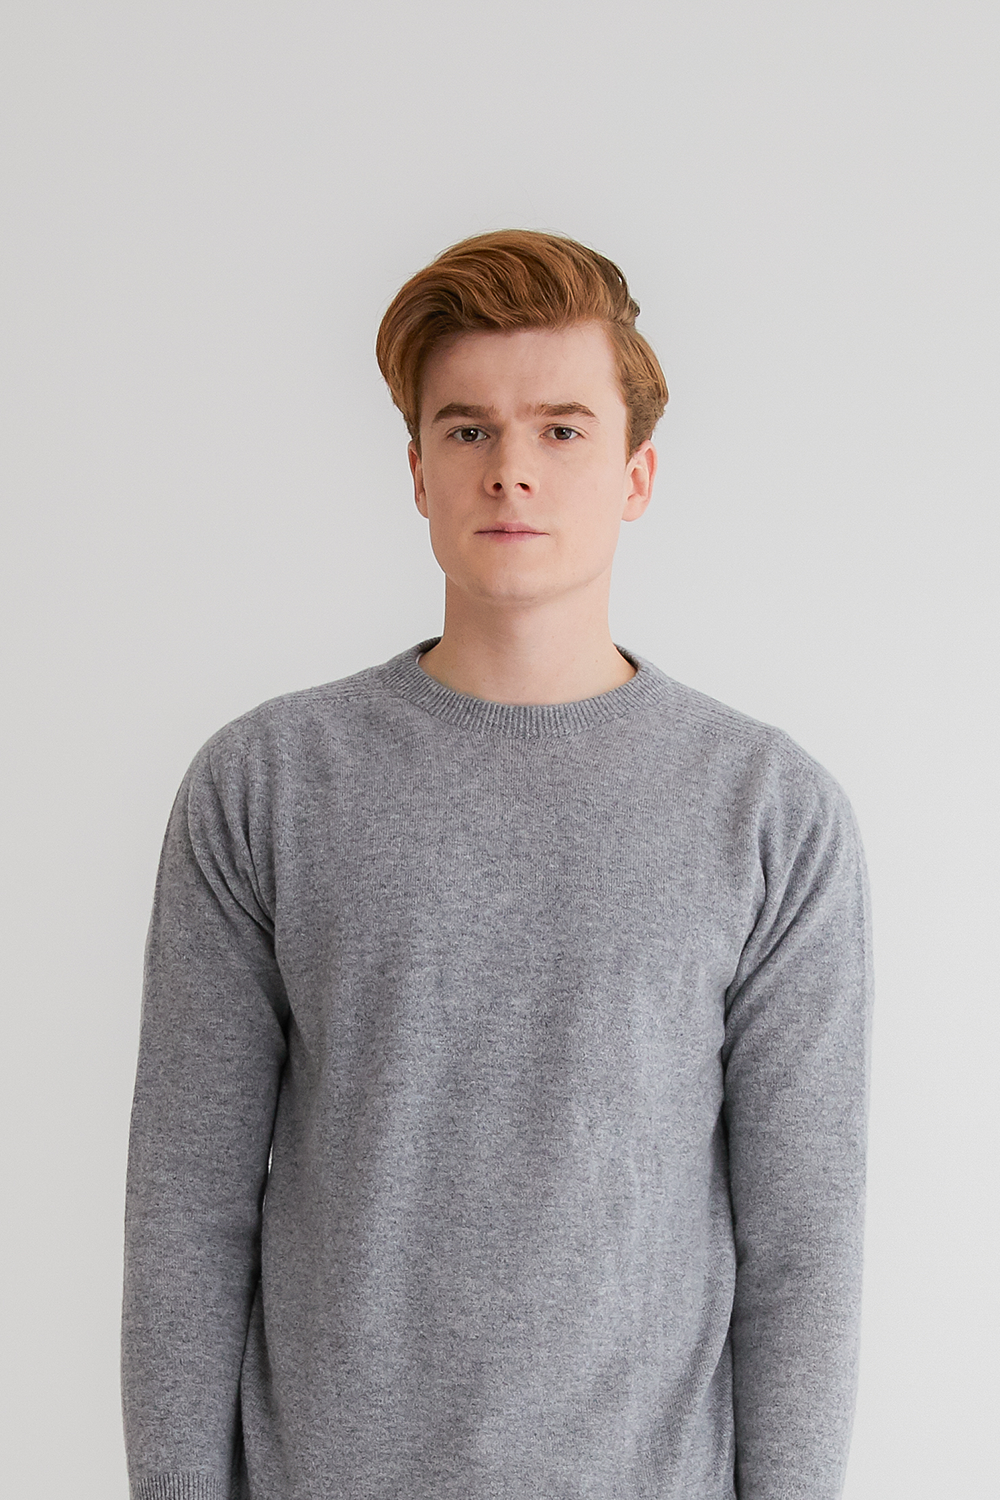 Pure cashmere100 whole-garment knitting roundneck pullover - Light gray (인기 상품/ M 사이즈 2차 재입고)